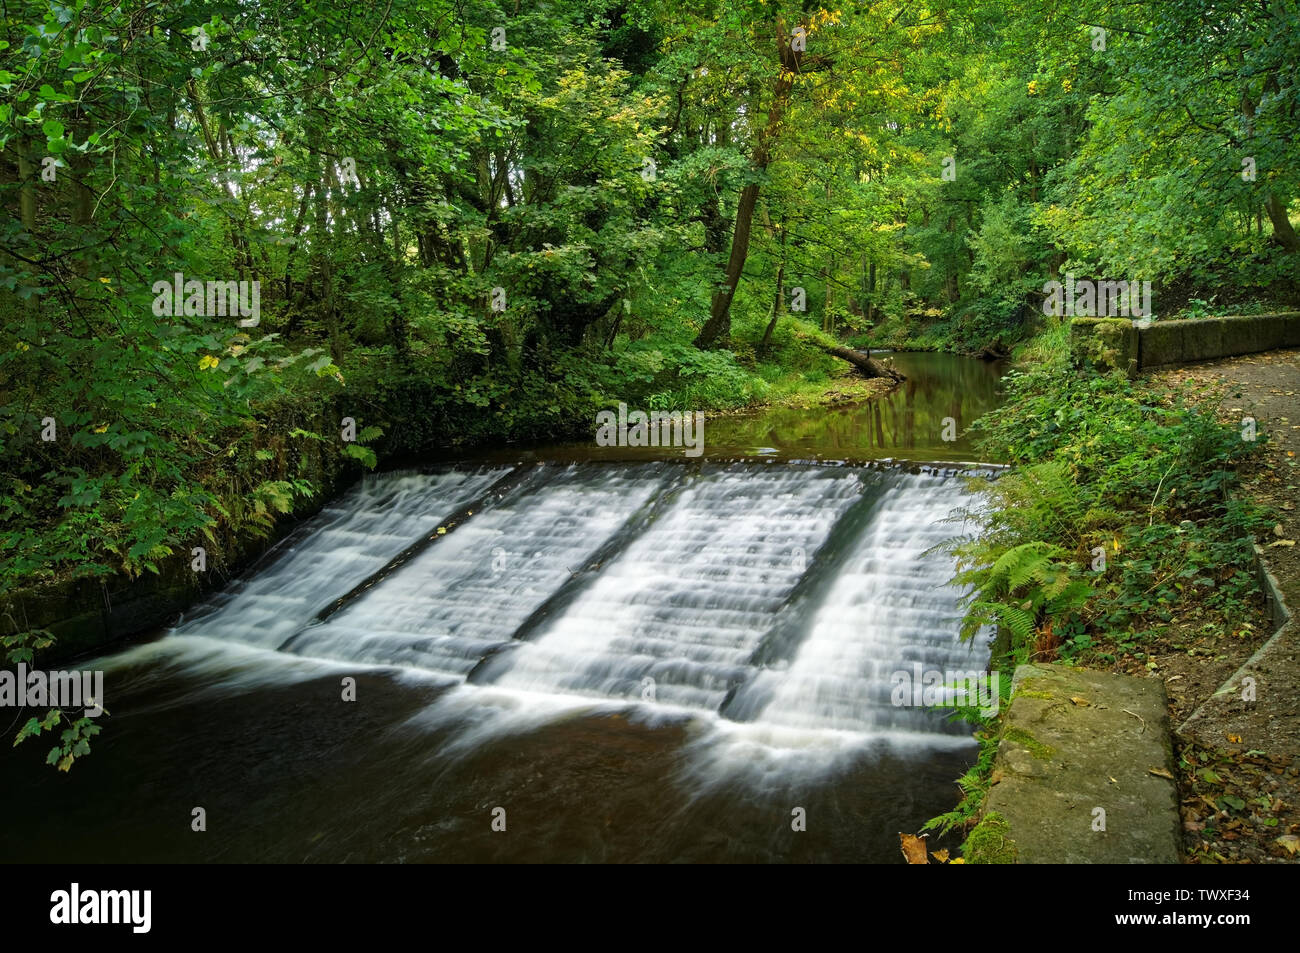 UK,South Yorkshire,Sheffield,River Loxley,Wisewood Forge Wheel Weir - Stock Image